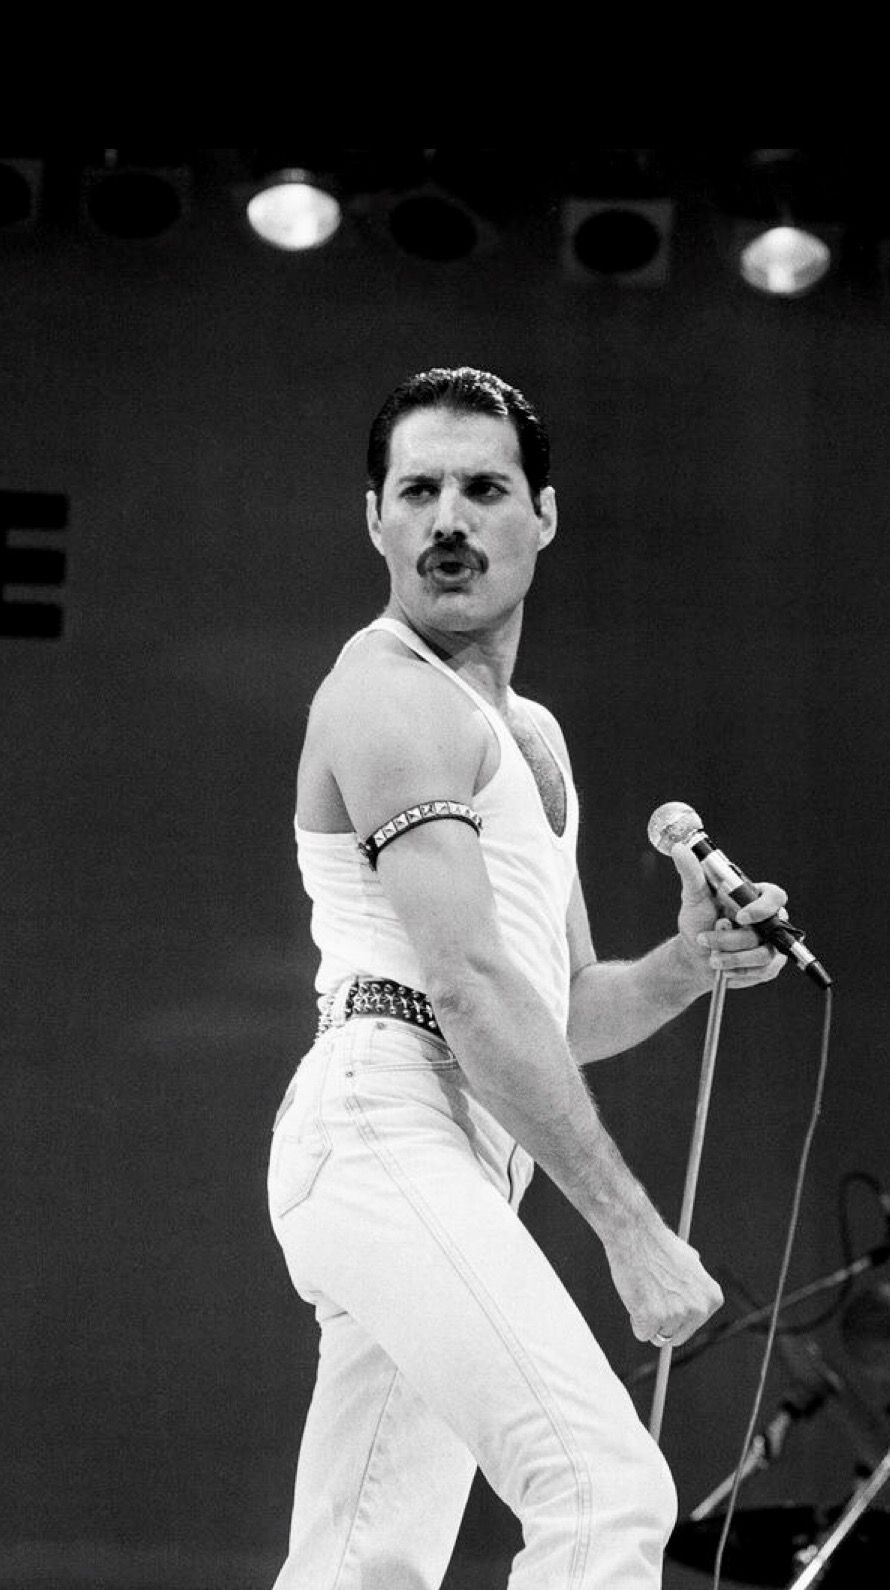 Pin By Georgia Hulett On Queen Phone Wallpapers Queen Freddie Mercury Freddie Mercury Queen Band